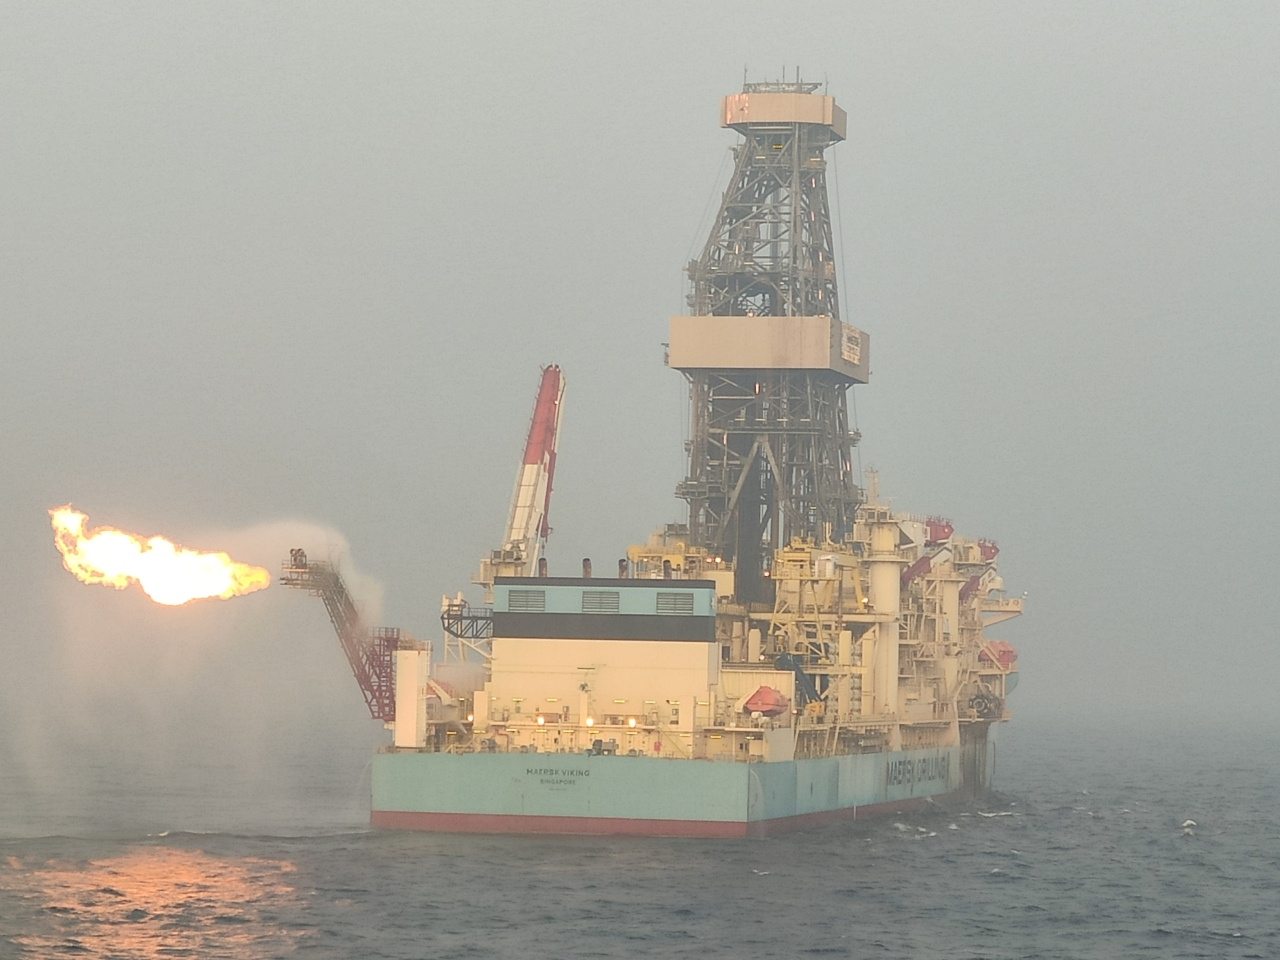 Posco International conducts drill stem testing via Maersk's drill ship to verify the existence of gas for the Mahar project in Block A-3, off the shore of Myanmar, Monday. (Posco International)